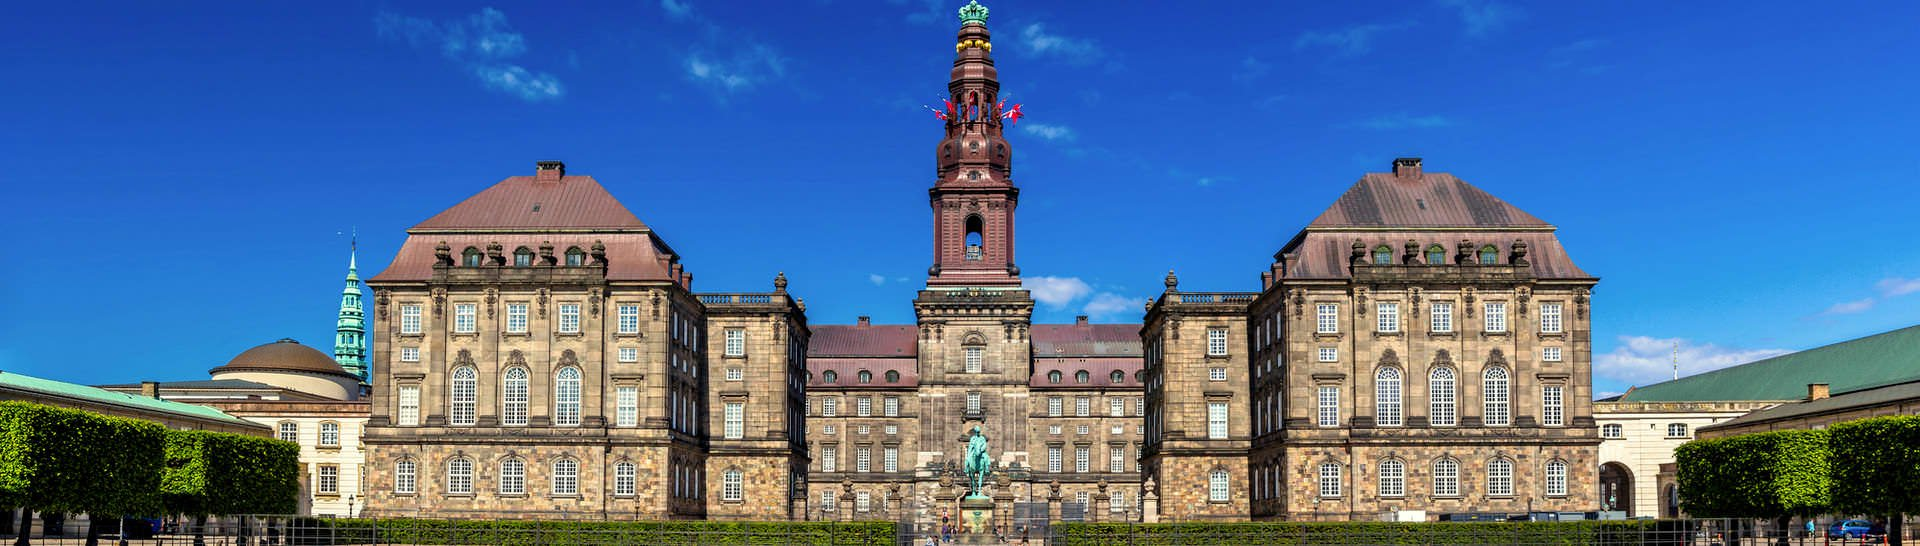 See the most popular tourist attractions, including the historical Christiansborg Palace during your guided tour of Copenhagen